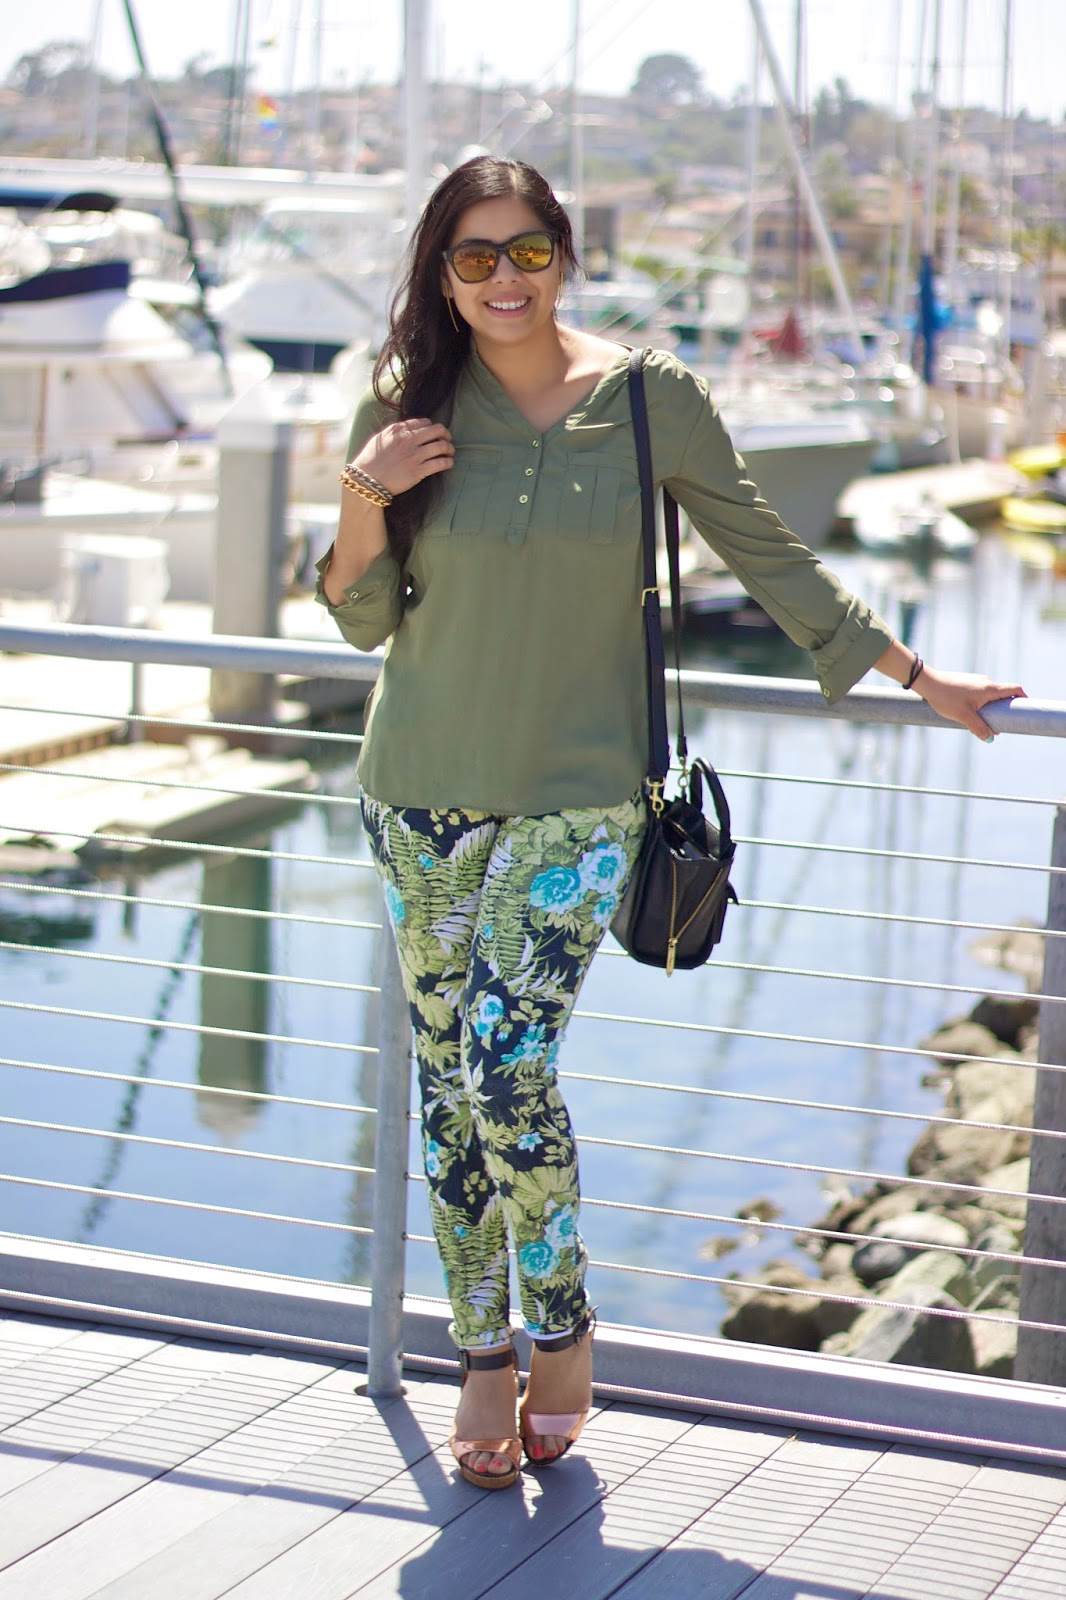 Vacation Mode outfit, tropical outfit, resortwear in San Diego